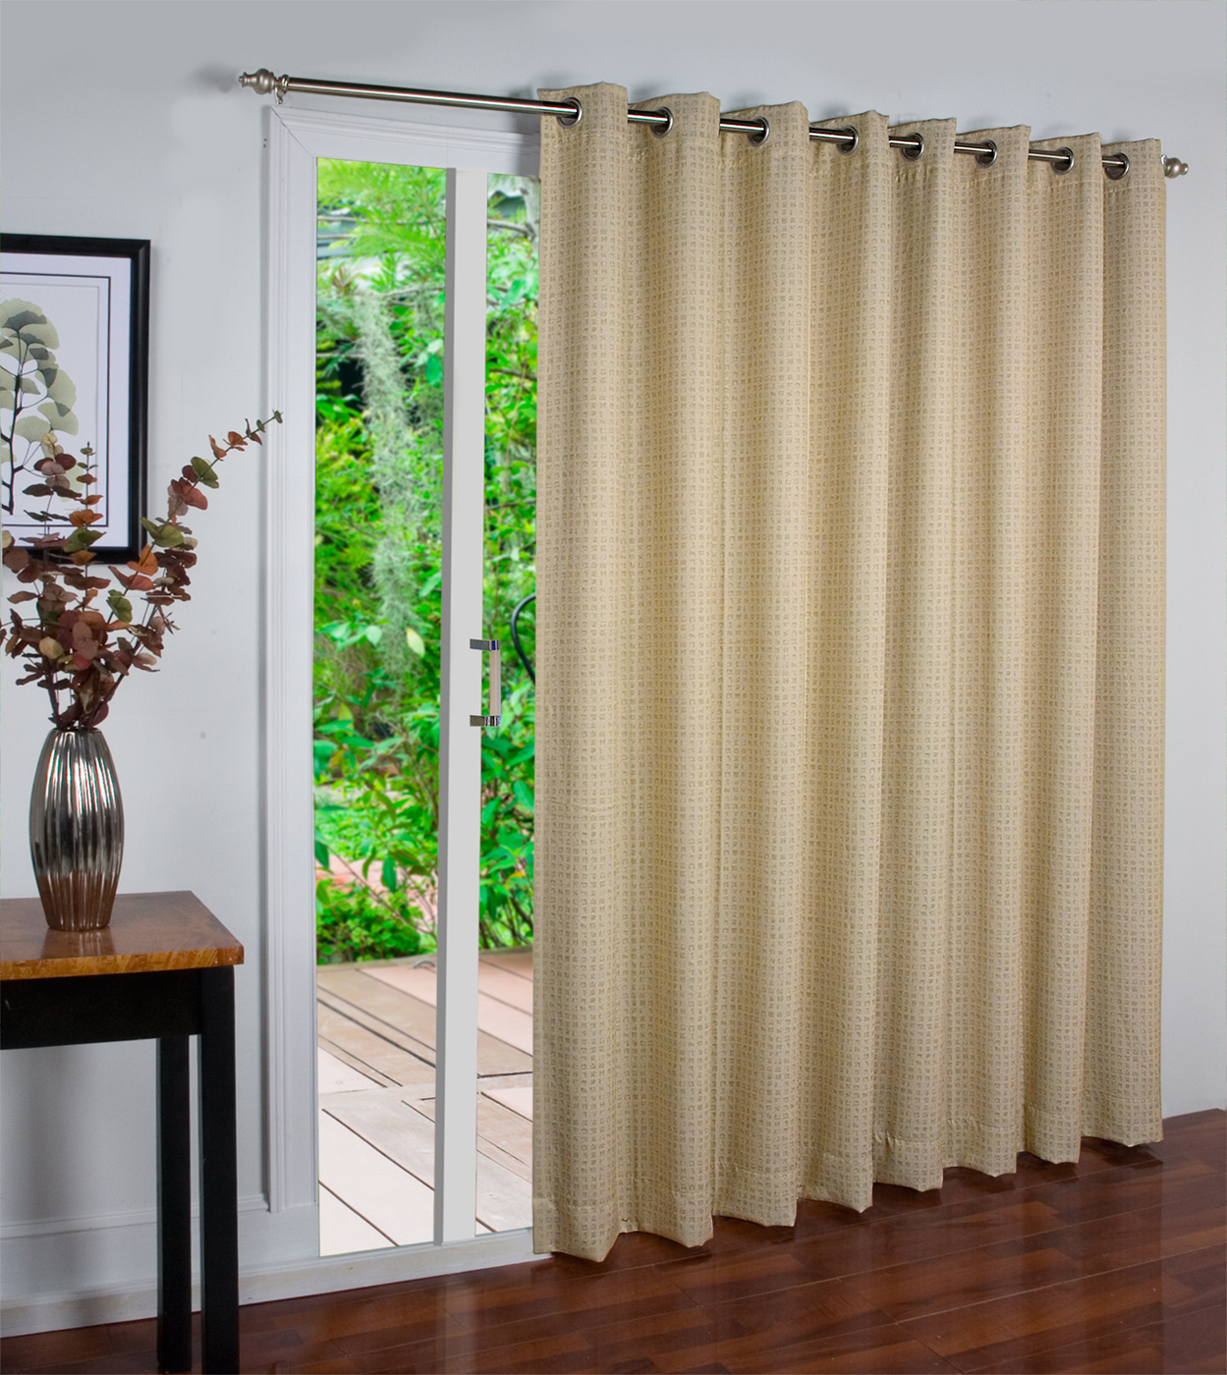 Patio Grommet Top Single Curtain Panels Throughout Most Up To Date Patio Door Curtains – Thecurtainshop (View 7 of 20)